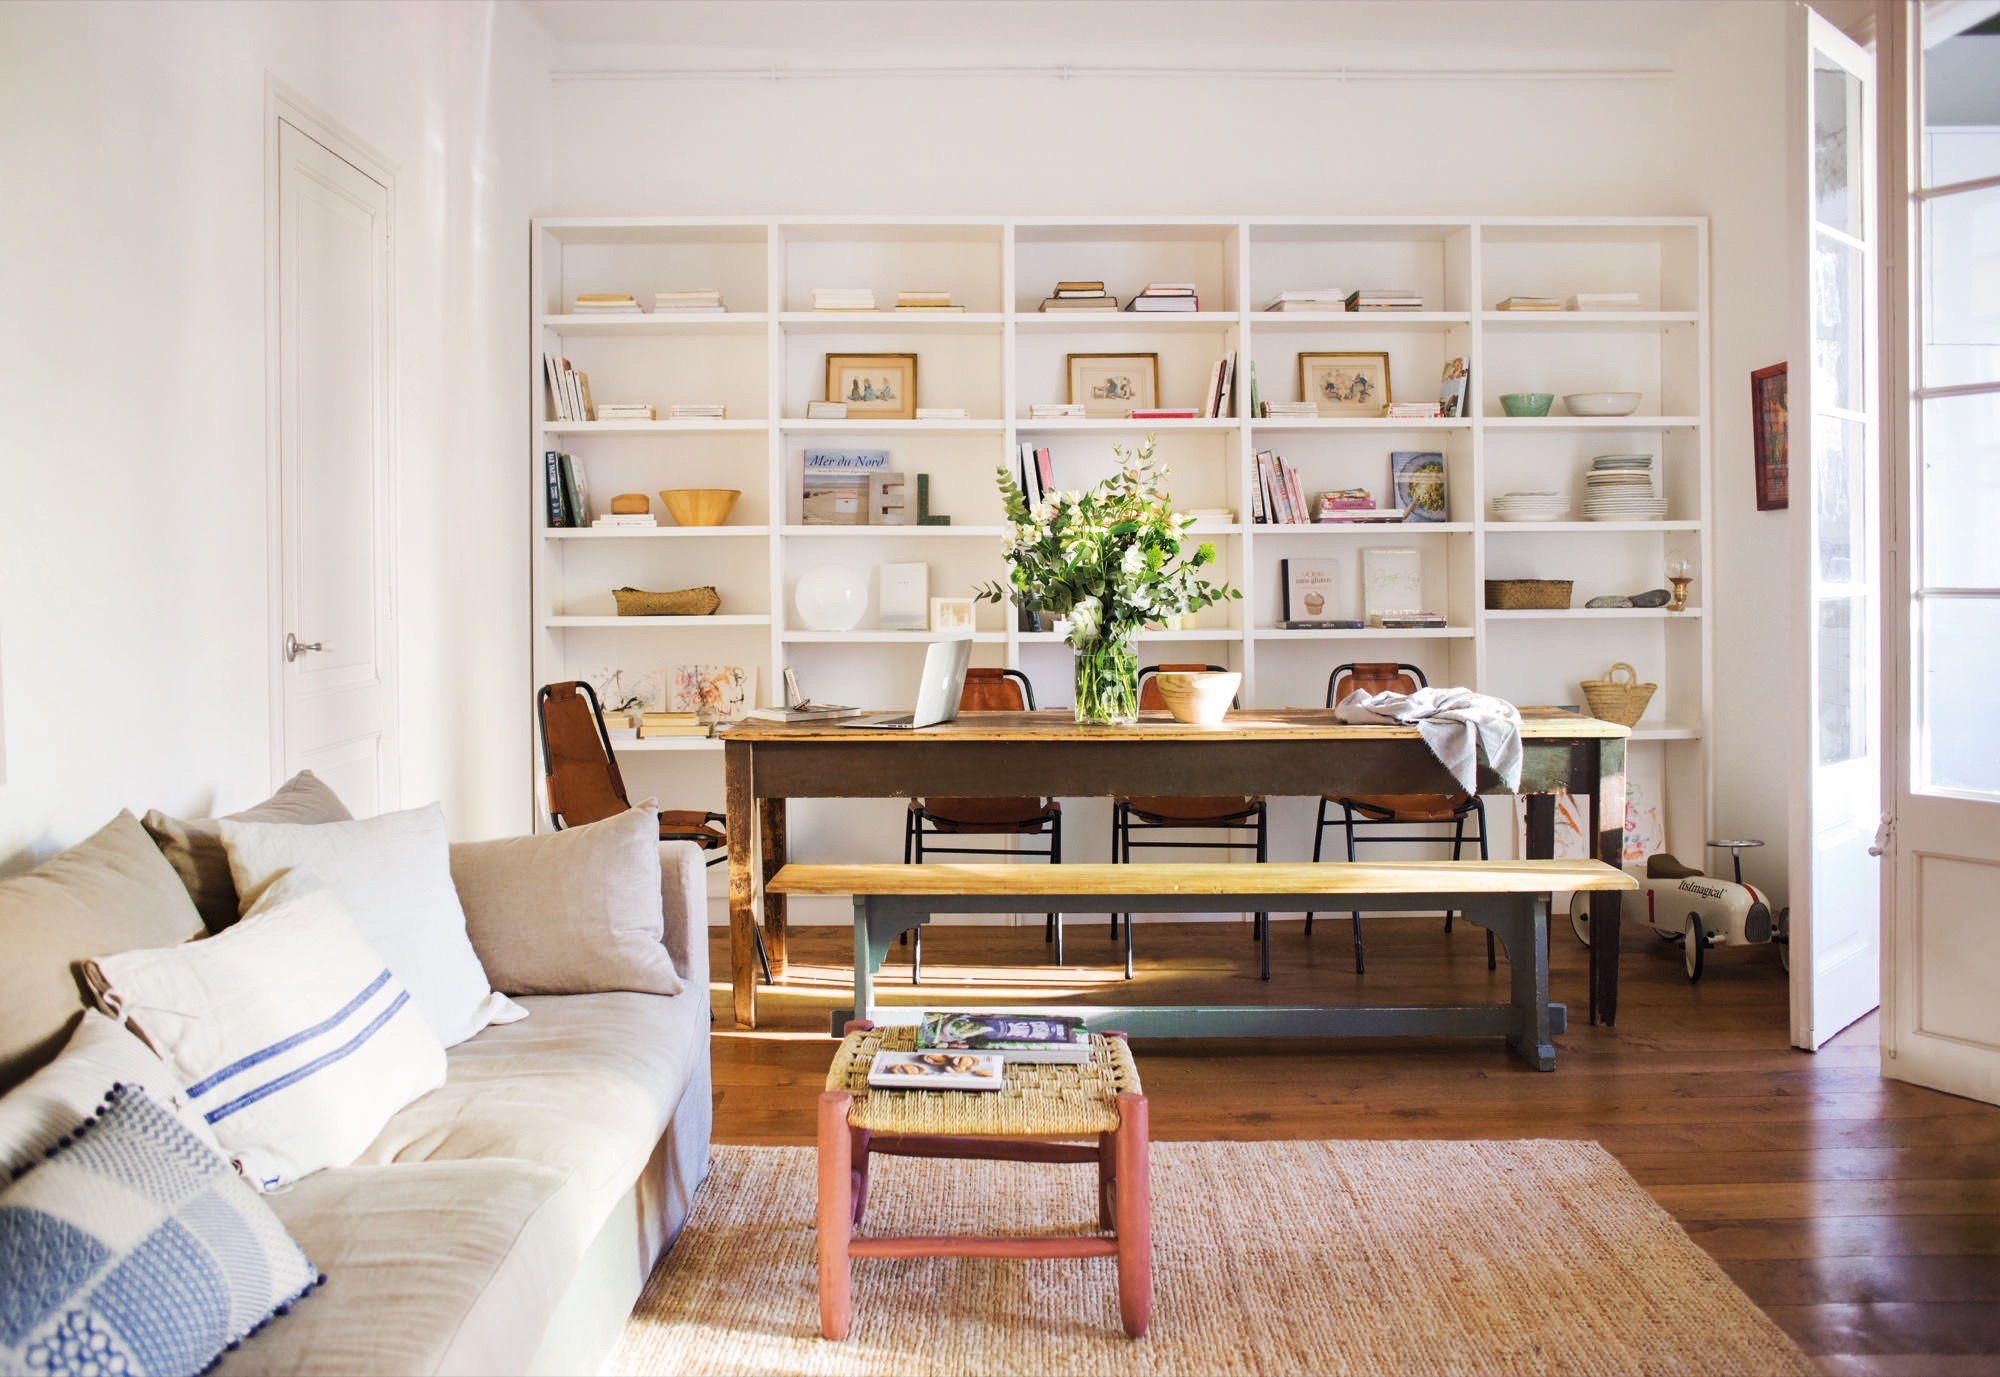 Chez chlo de being biotiful planete deco a homes world bloglovin in the past by the architect albert pascual preserving its original structure charm doors and ceilings it was a crush remembers chloe smiling geotapseo Image collections